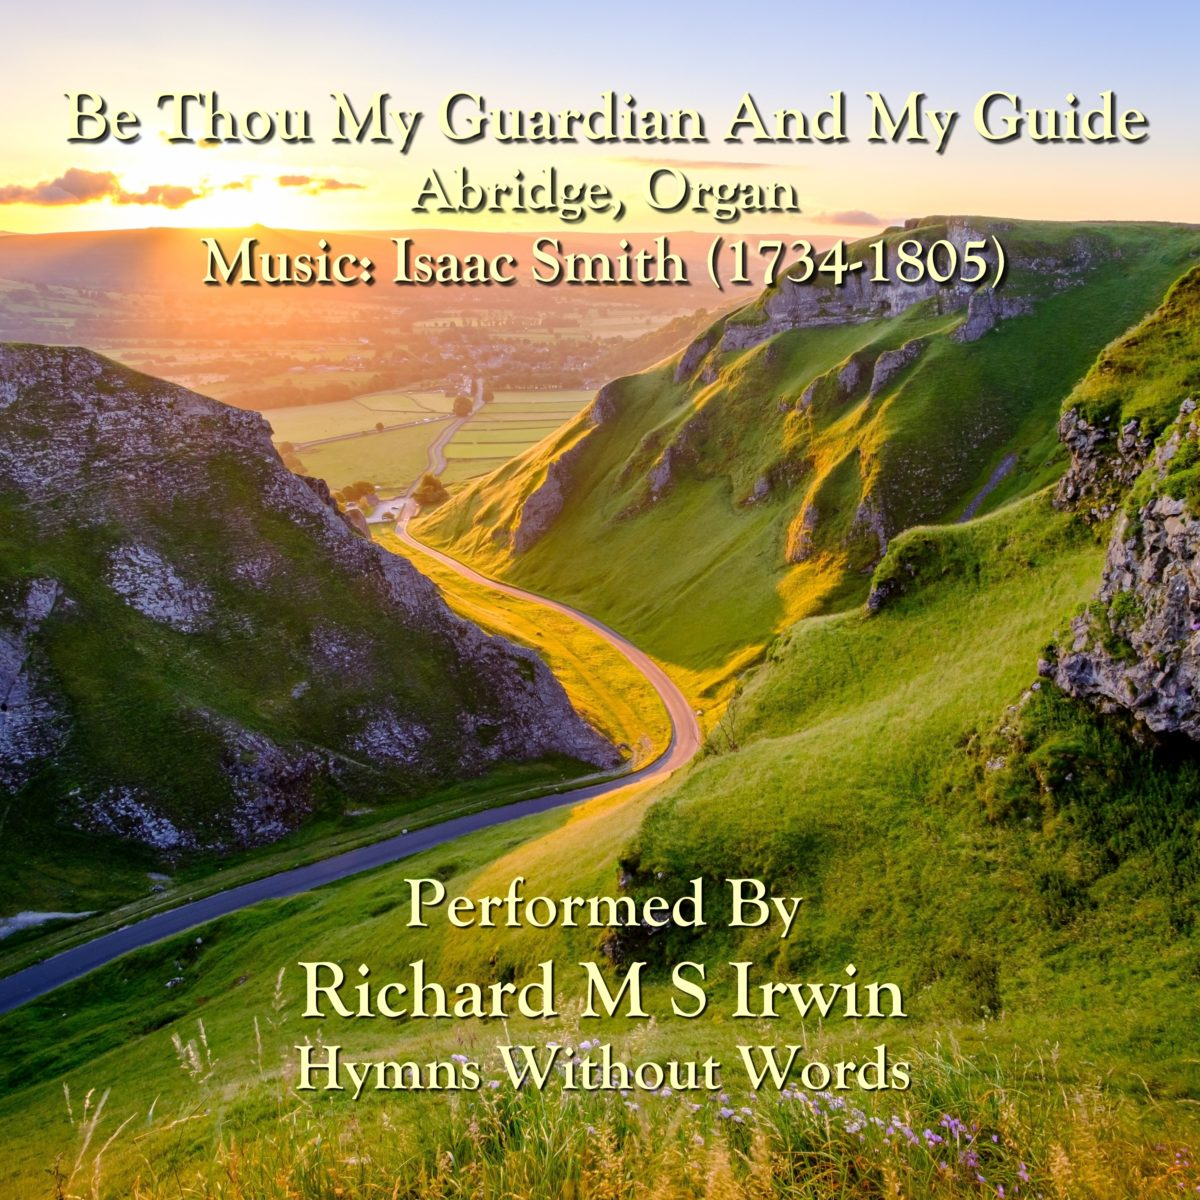 Be Thou My Guardian And My Guide (Abridge, Organ, 4 Verses)